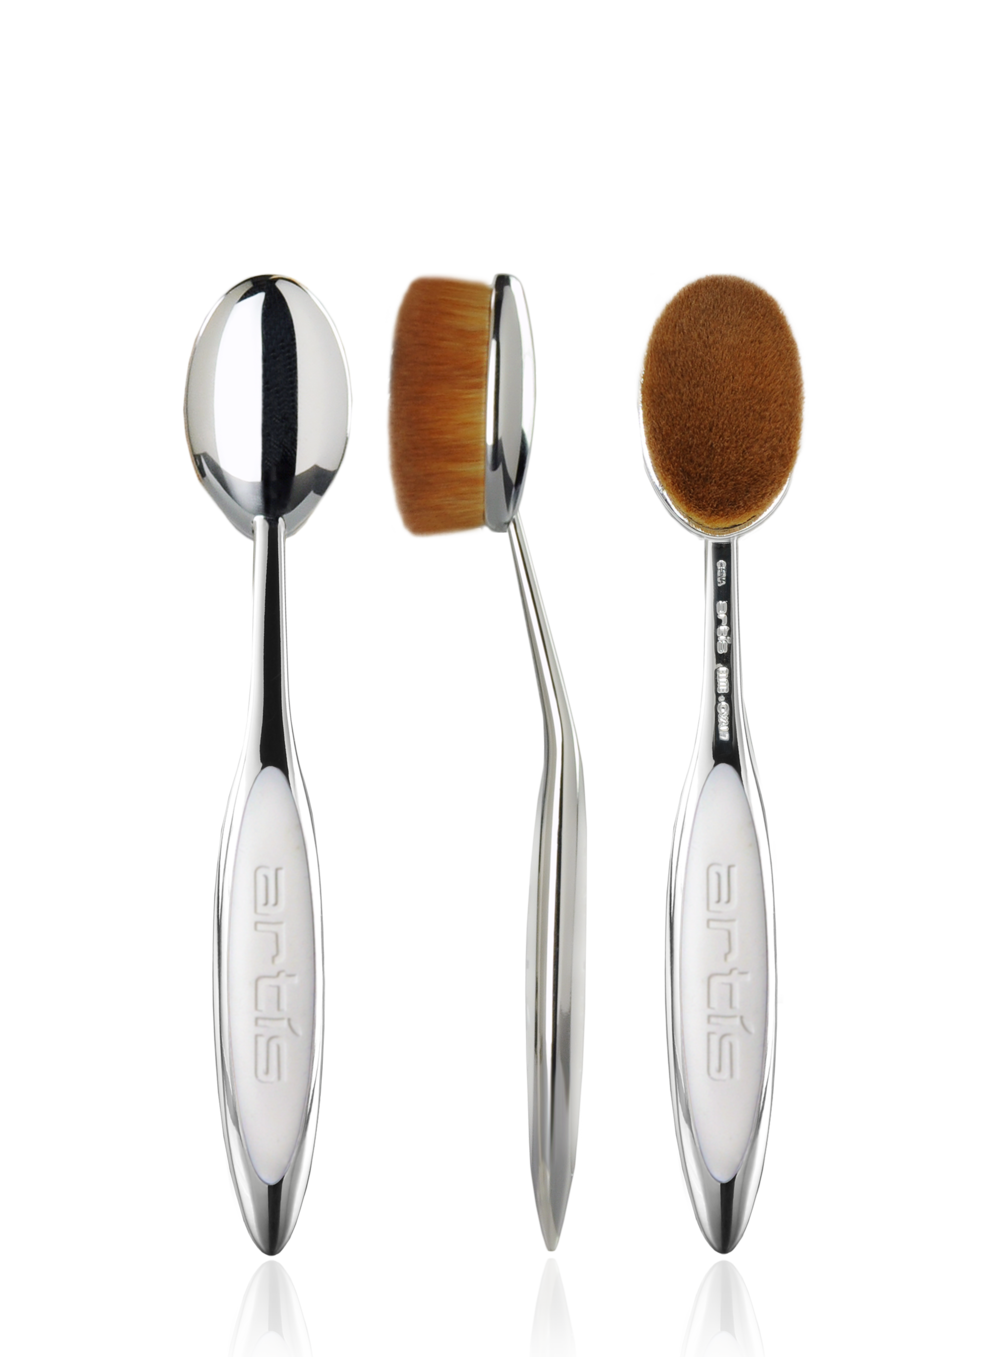 1b65a5738326 Oval Makeup Brushes